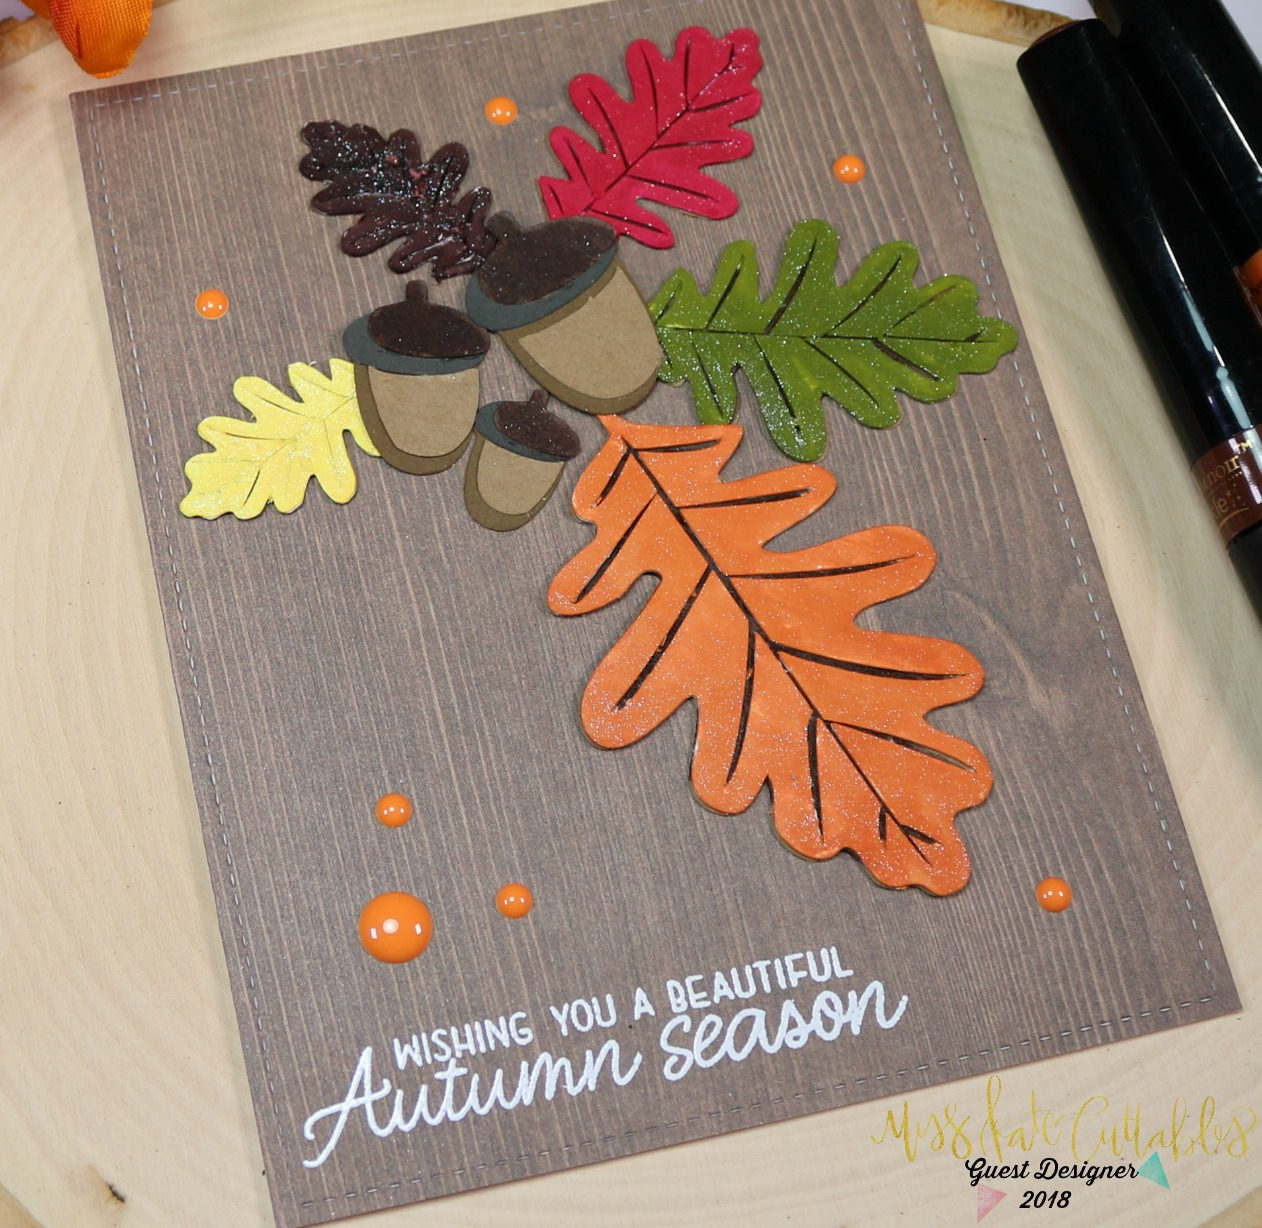 http://creativepixiedesigns.com/wp-content/uploads/2018/11/Miss-Kate-Cuttables-FallCard1.jpg